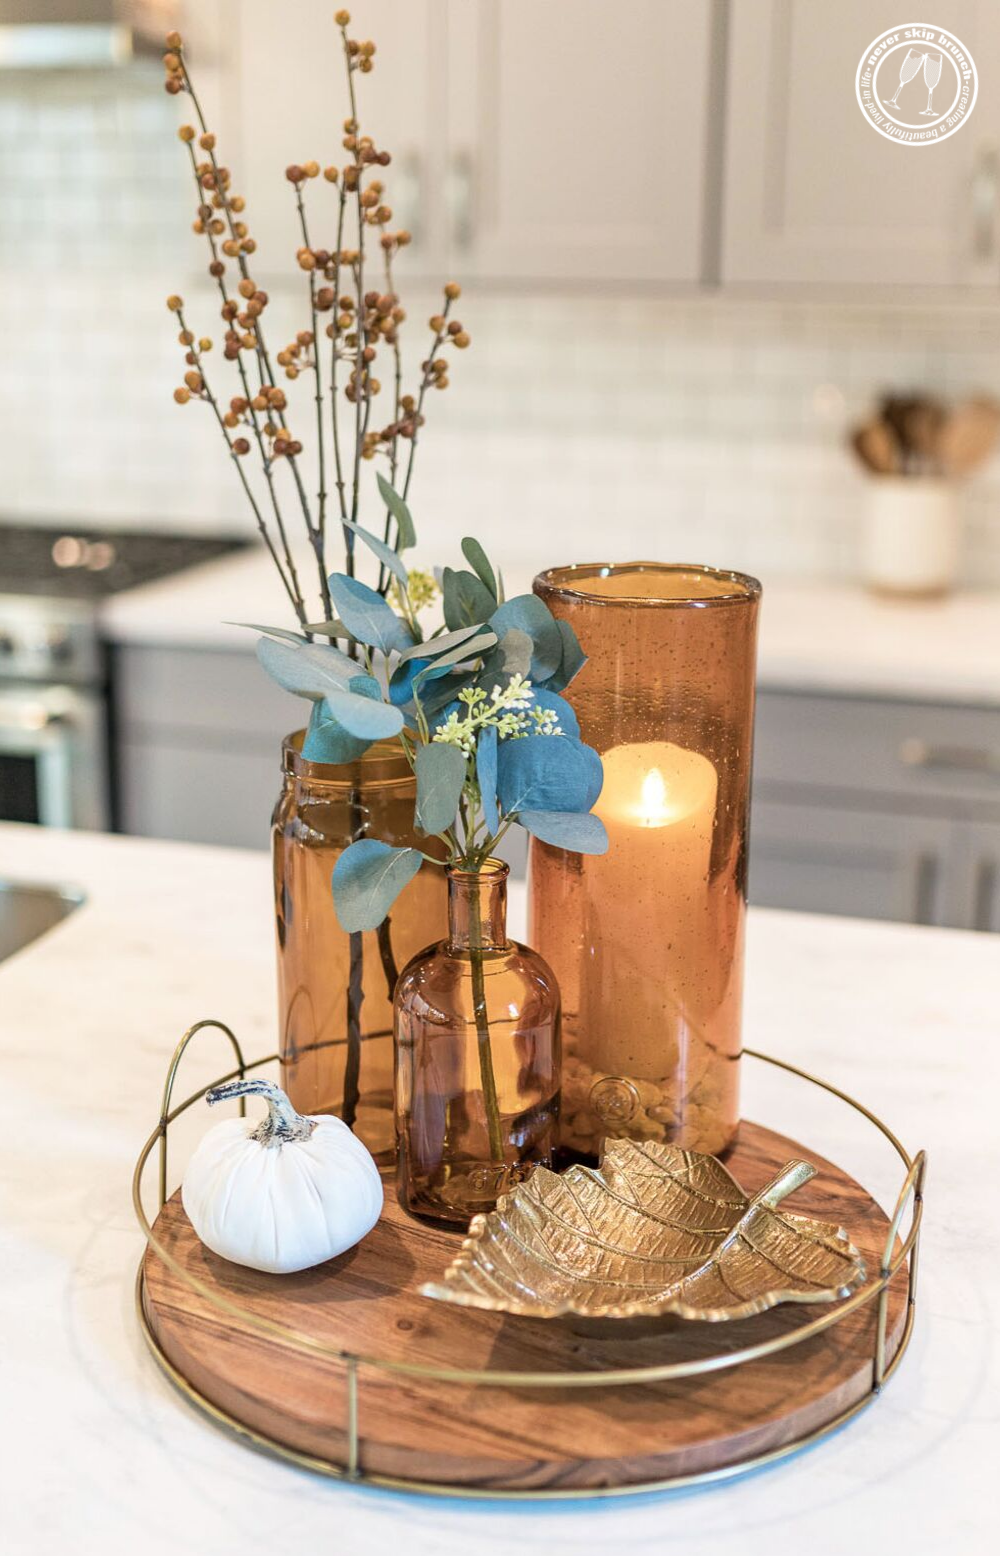 FALL DECOR for the KITCHEN COUNTER